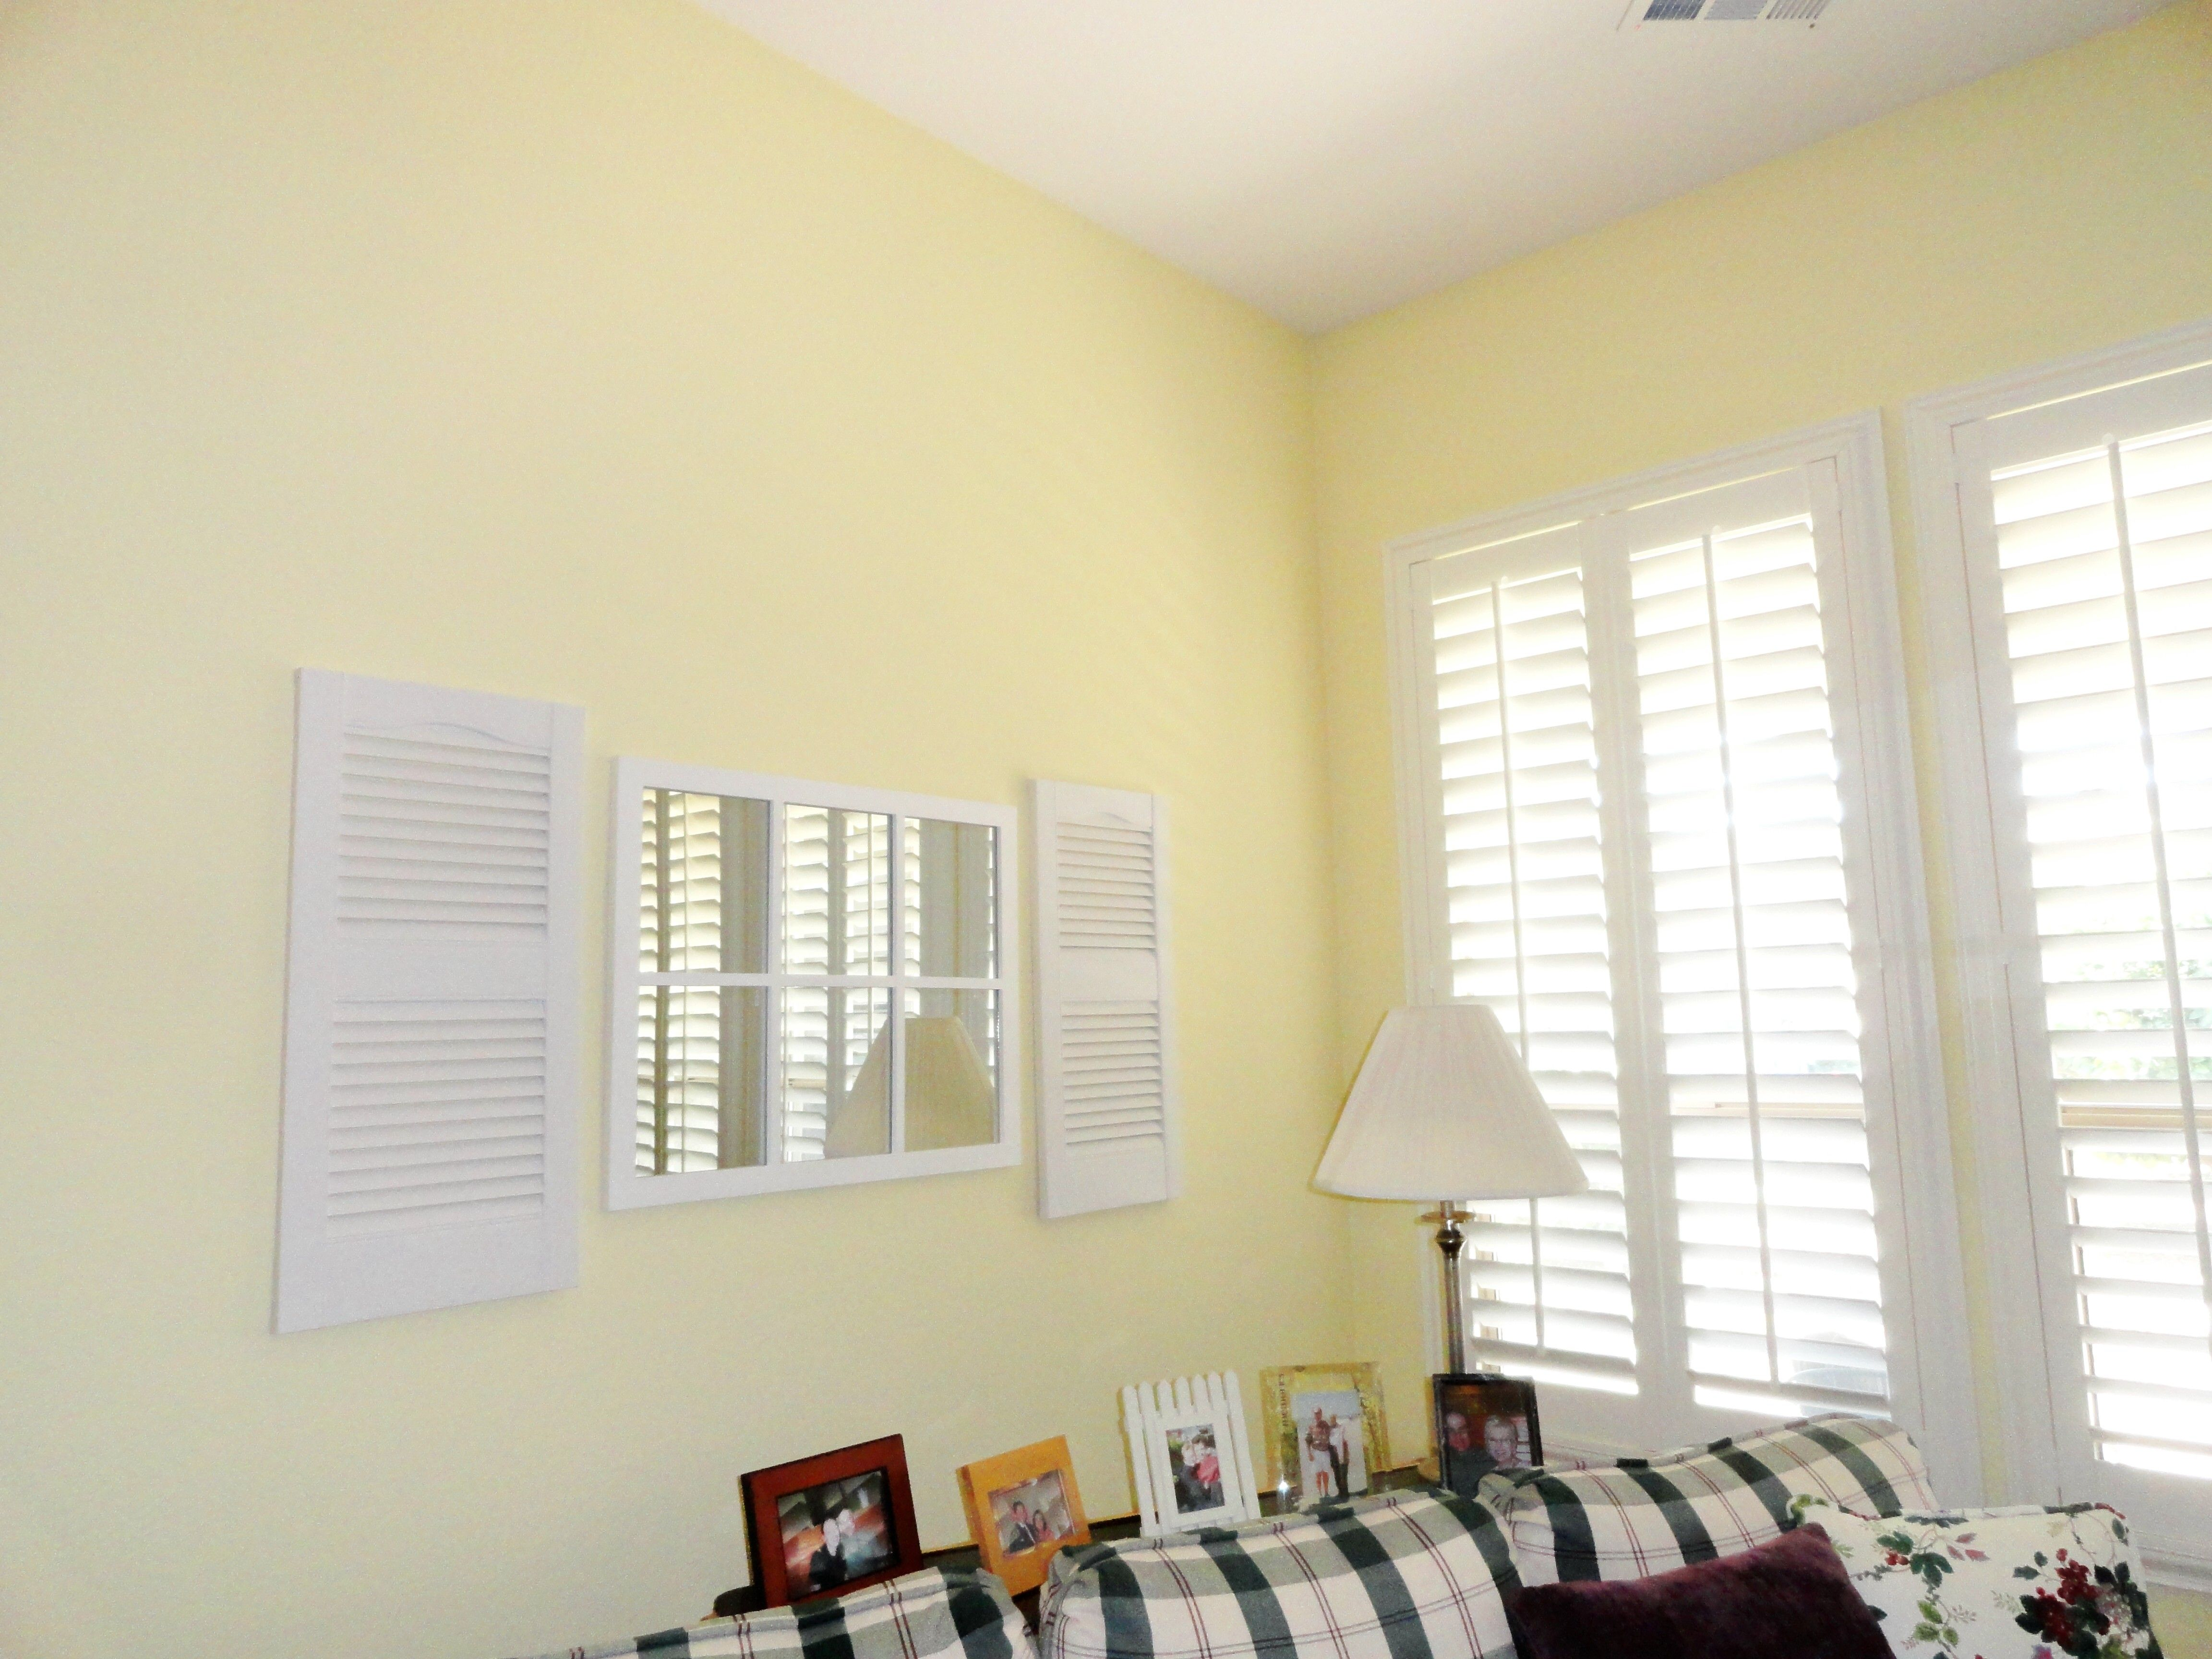 Found the window pane mirror at Hobby Lobby and ordered the little ...